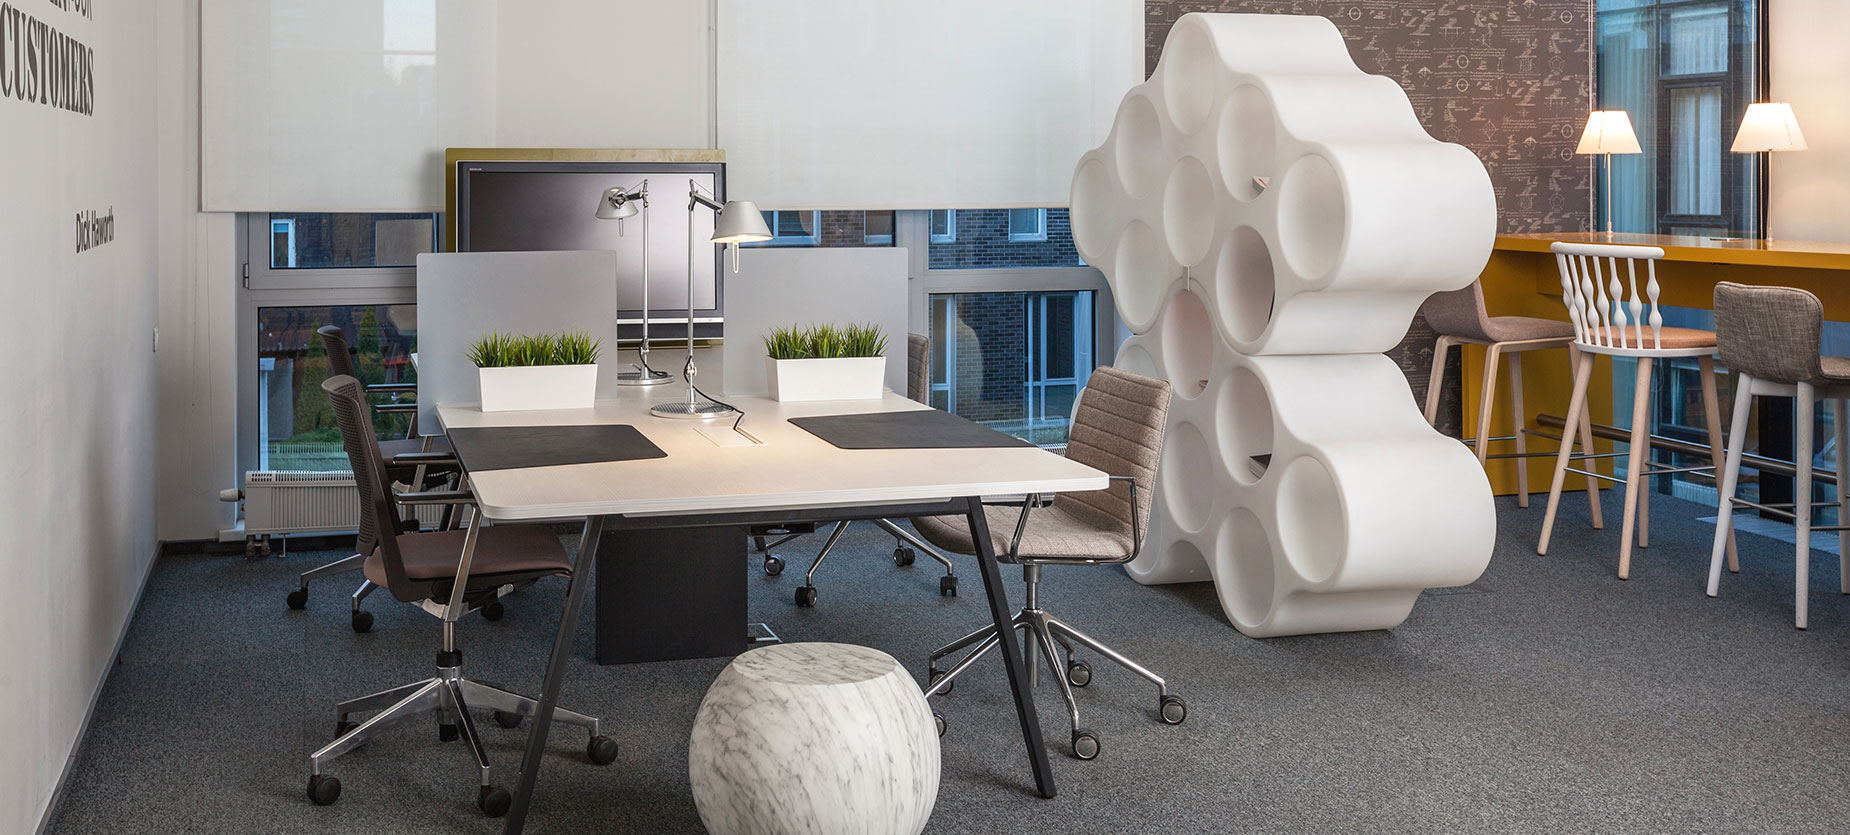 This hot-desking space features a four-person bench with movable screens and a display. Cloud storage serves as a space divider between desks and the bar table, which accommodates for sit/stand work.